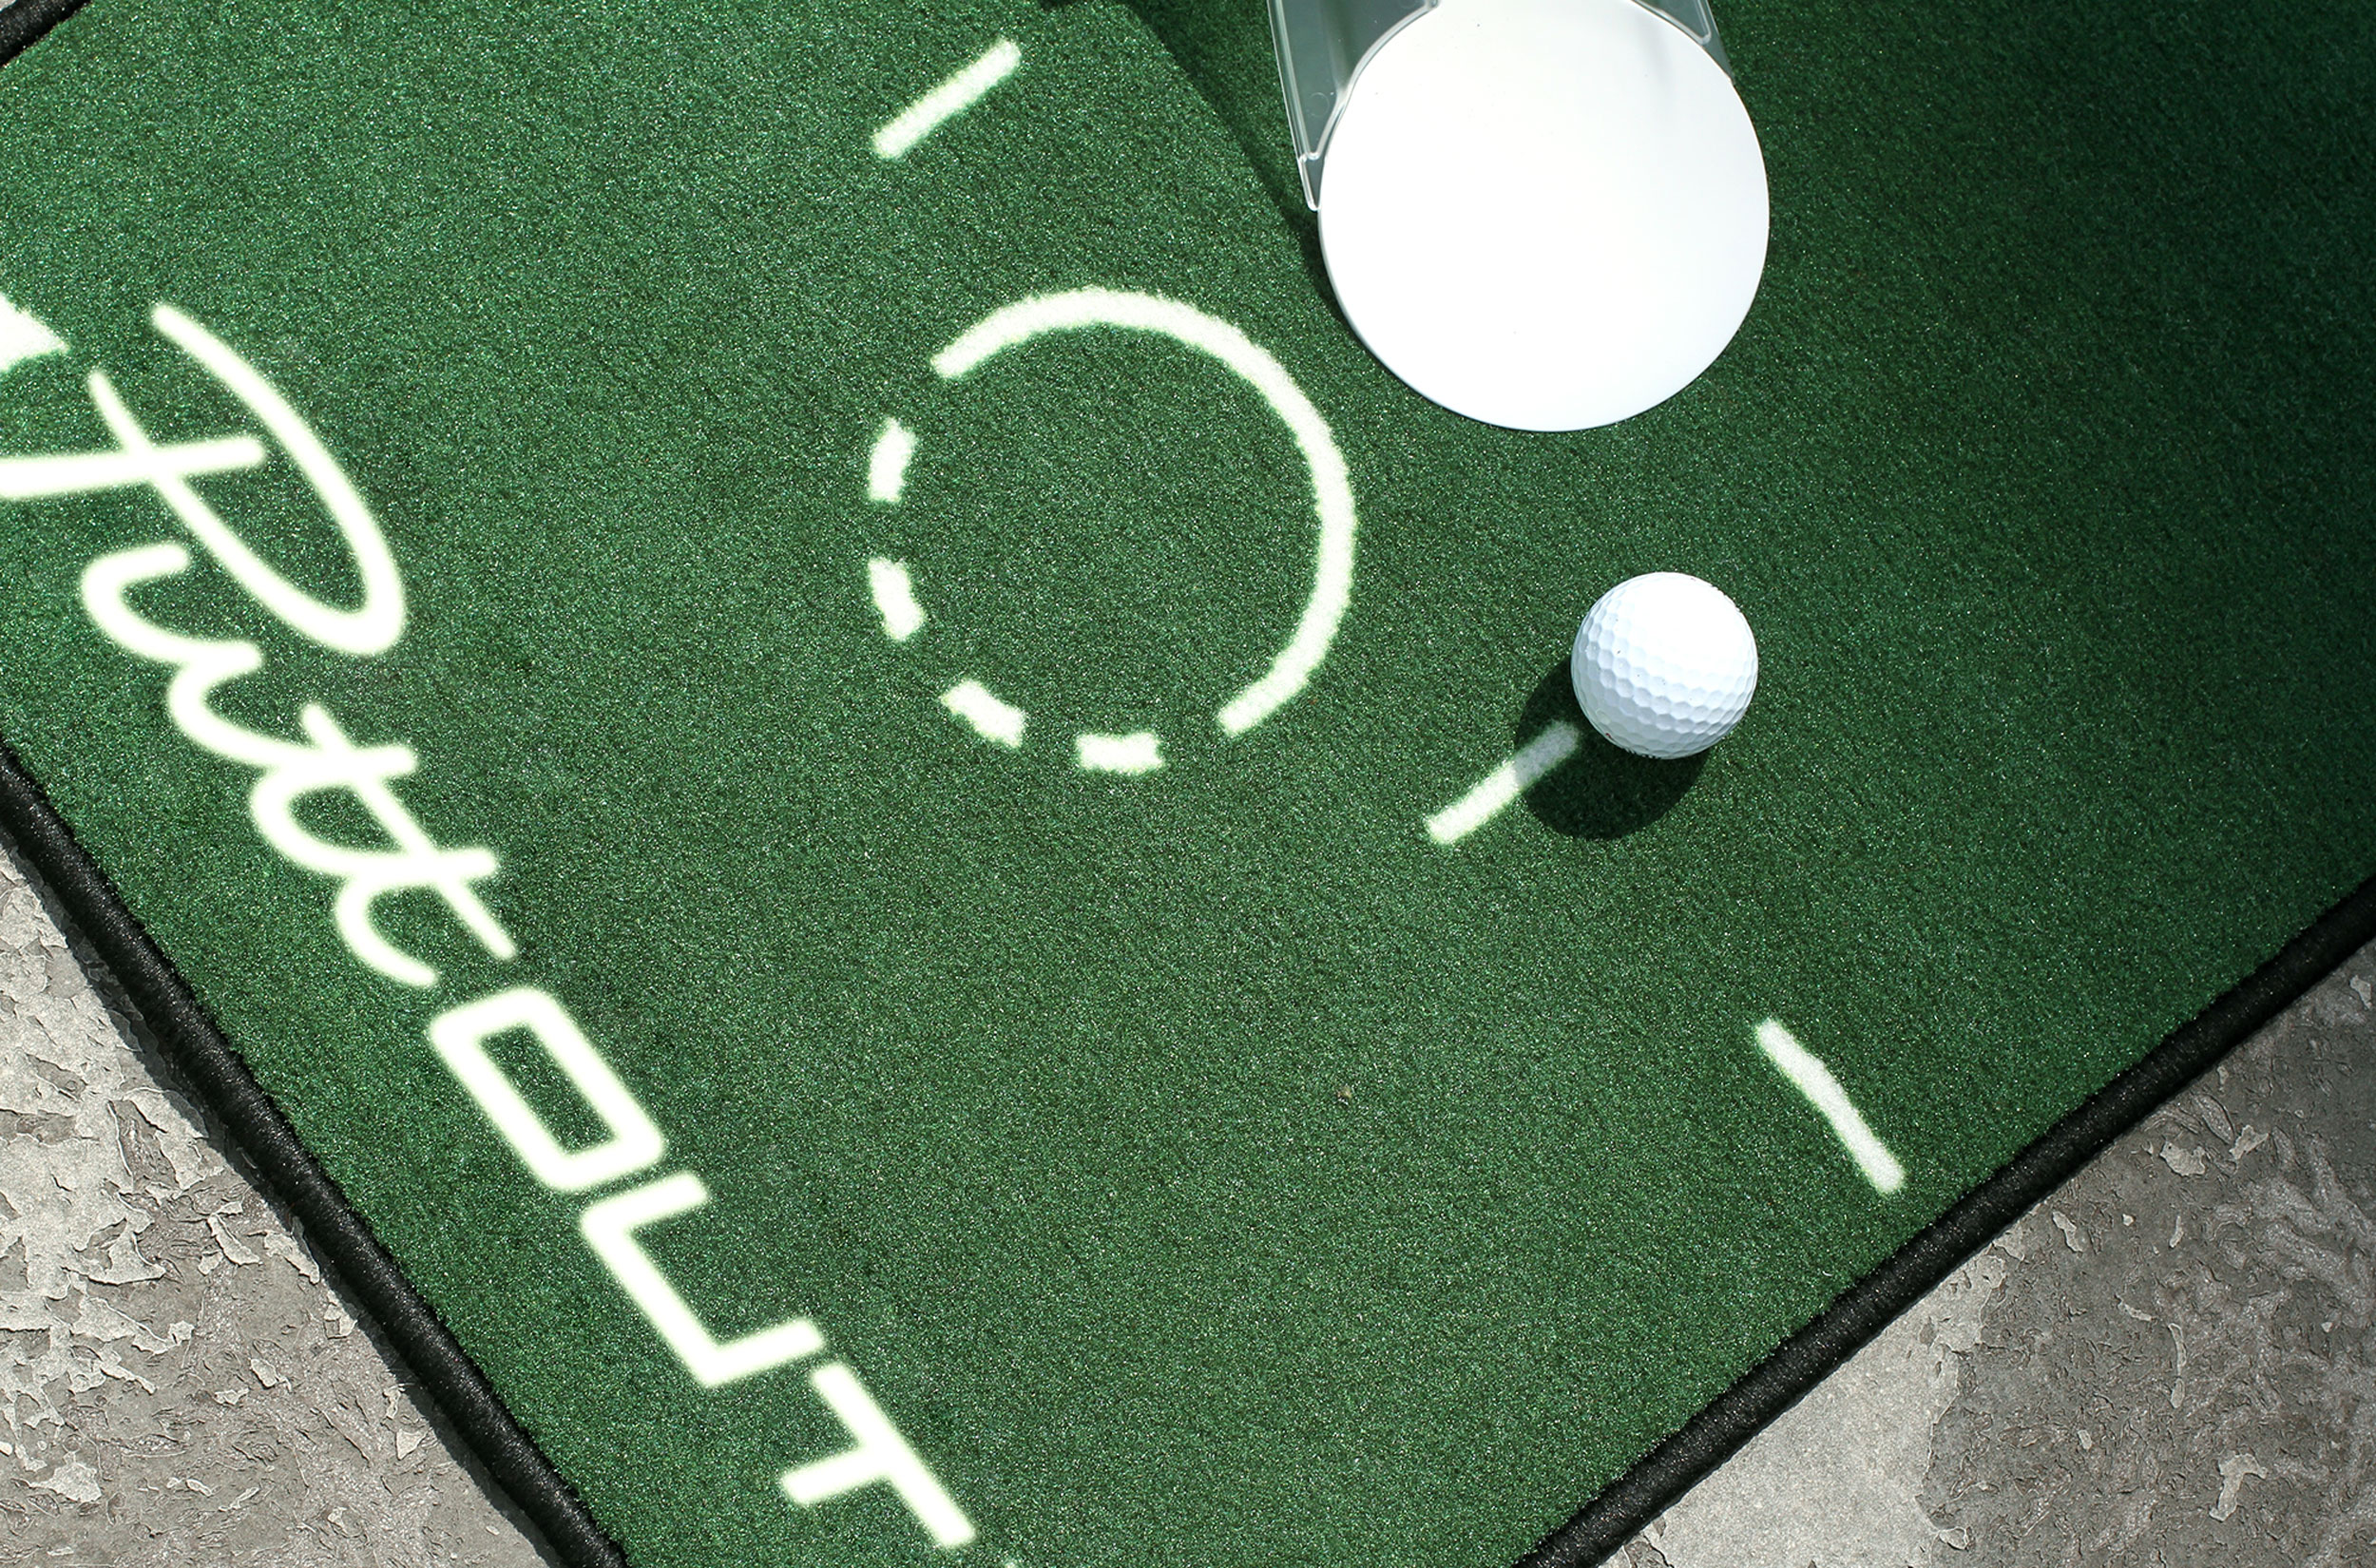 PUTTING MAT - To be the best putter you can be takes practice. With the PuttOUT Putting Mat you have a reliable base for practicing the most underrated part of anyone's game: putting.Available in two colours (green and grey) and printed with markings up to 6-feet, alignment lines and pace targets, the PuttOUT Putting Mat is designed to give you the opportunity to practice every aspect of your putting game.